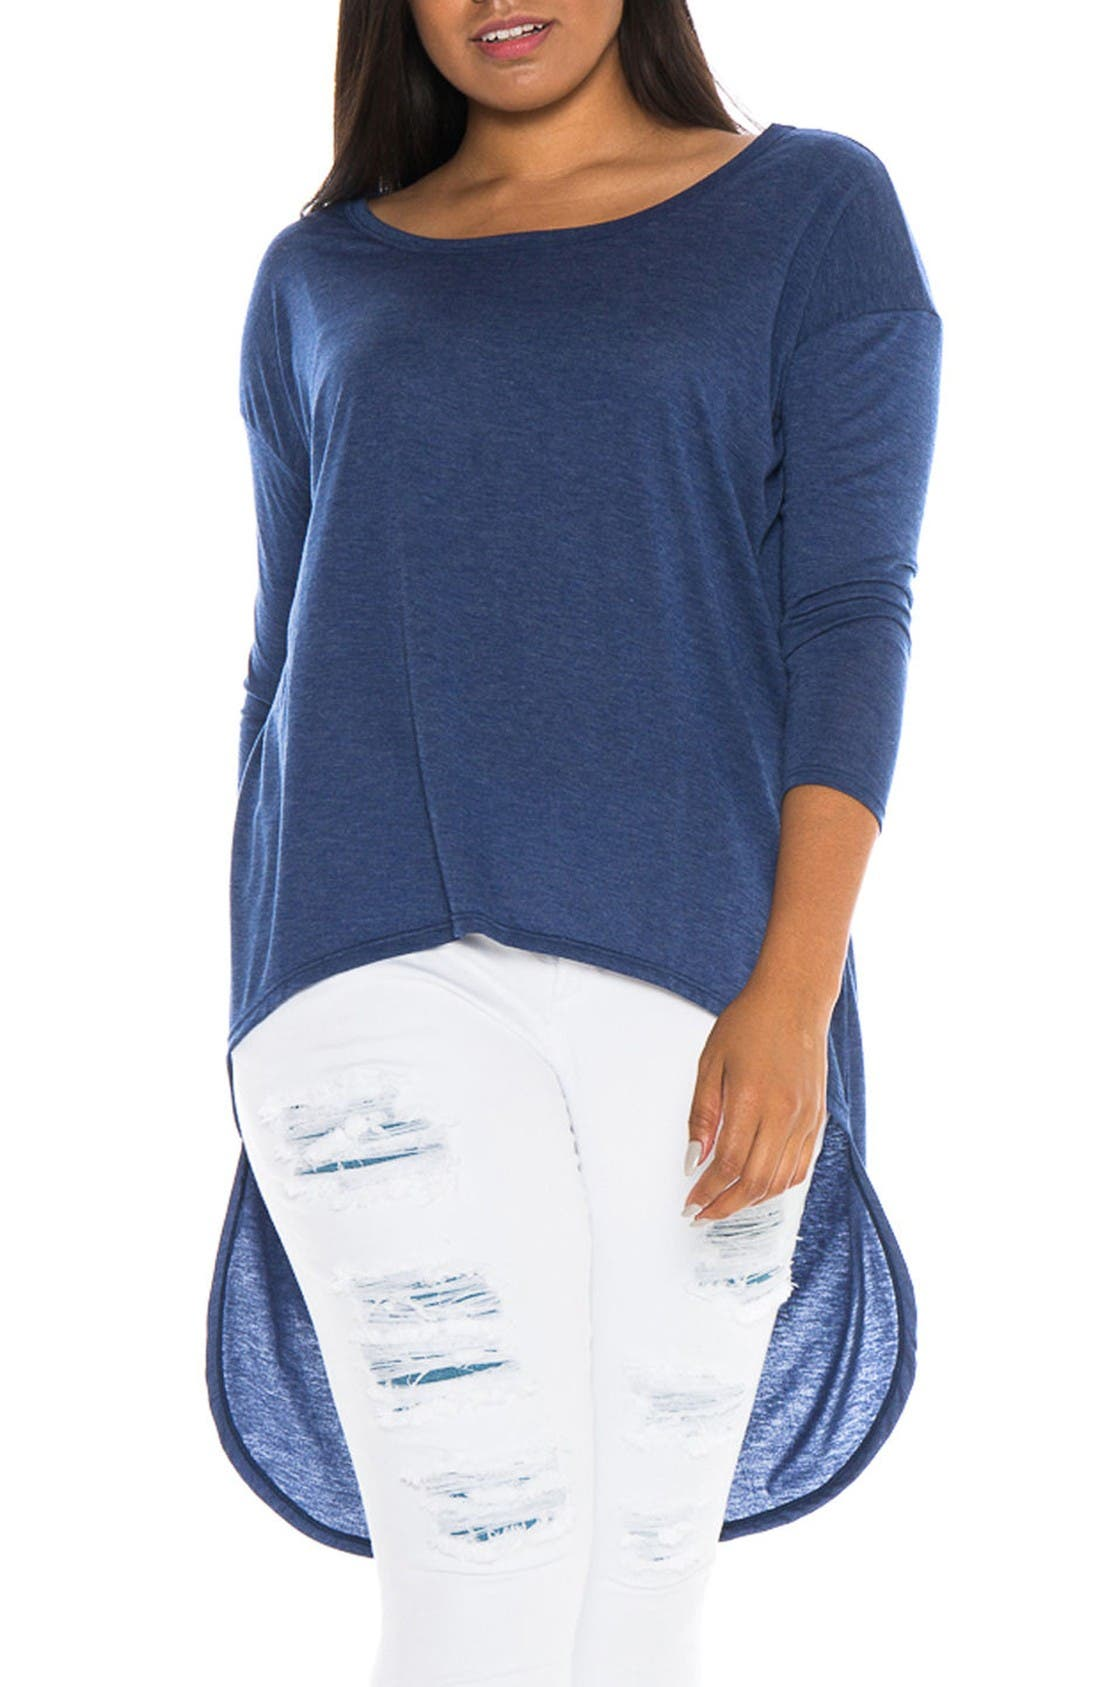 SLINK Jeans High/Low Top (Plus Size)